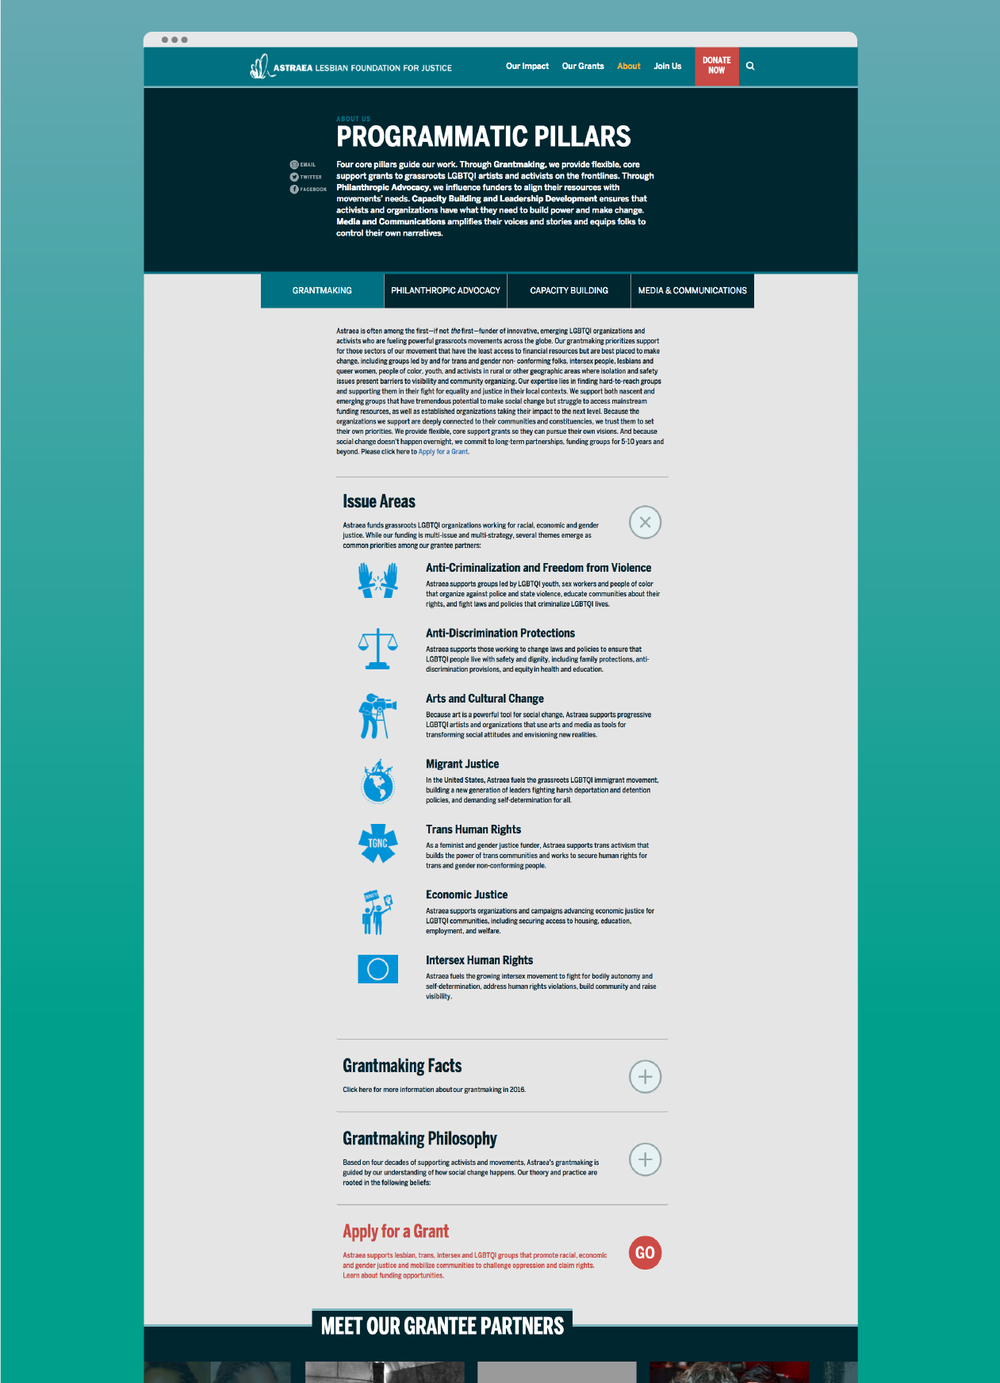 Programmatic pillar full-page view with drop-downs